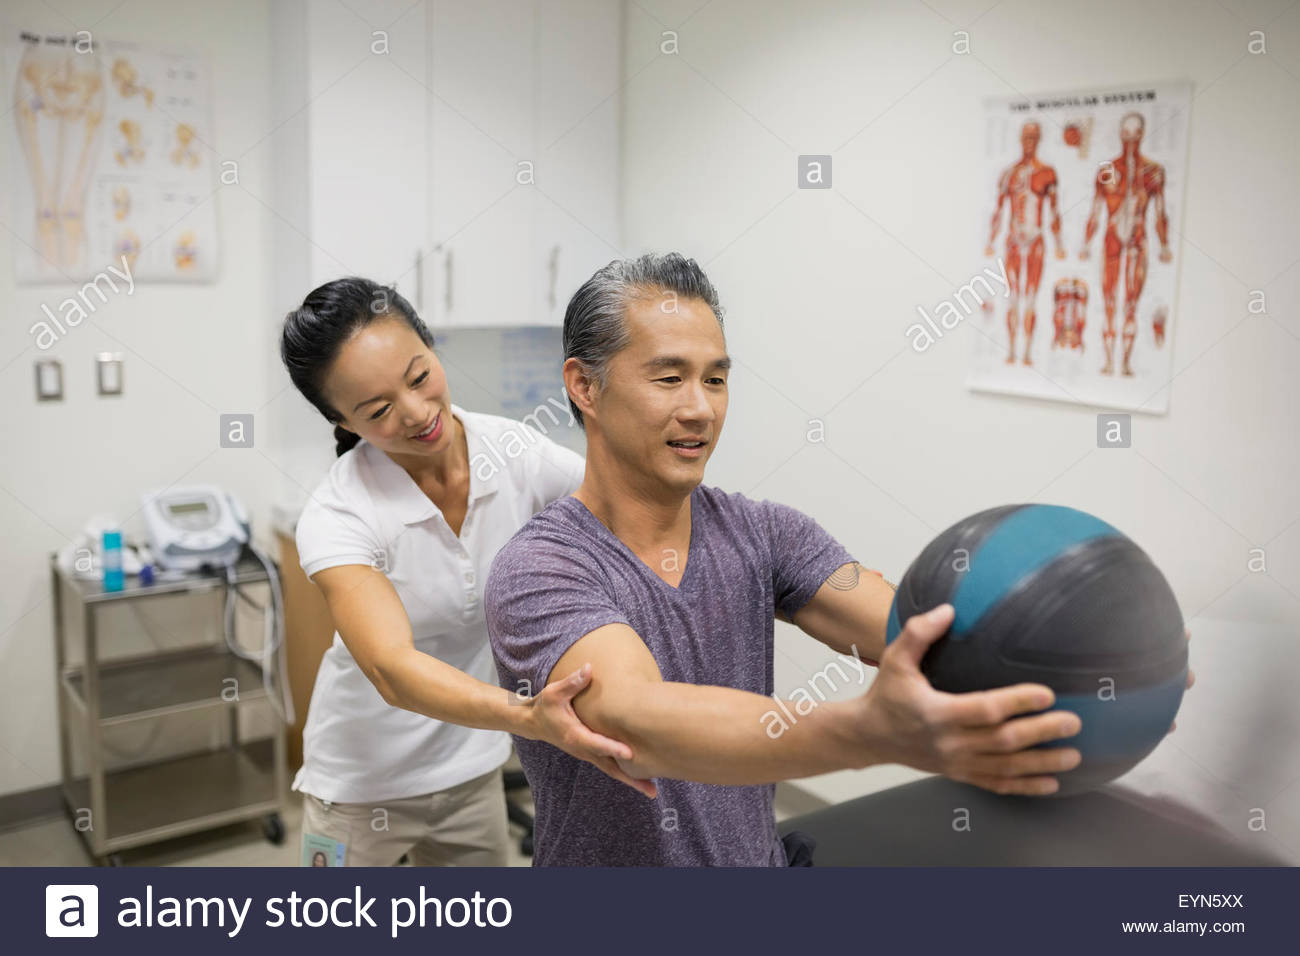 Physical therapist guiding patient holding medicine ball - Stock Image